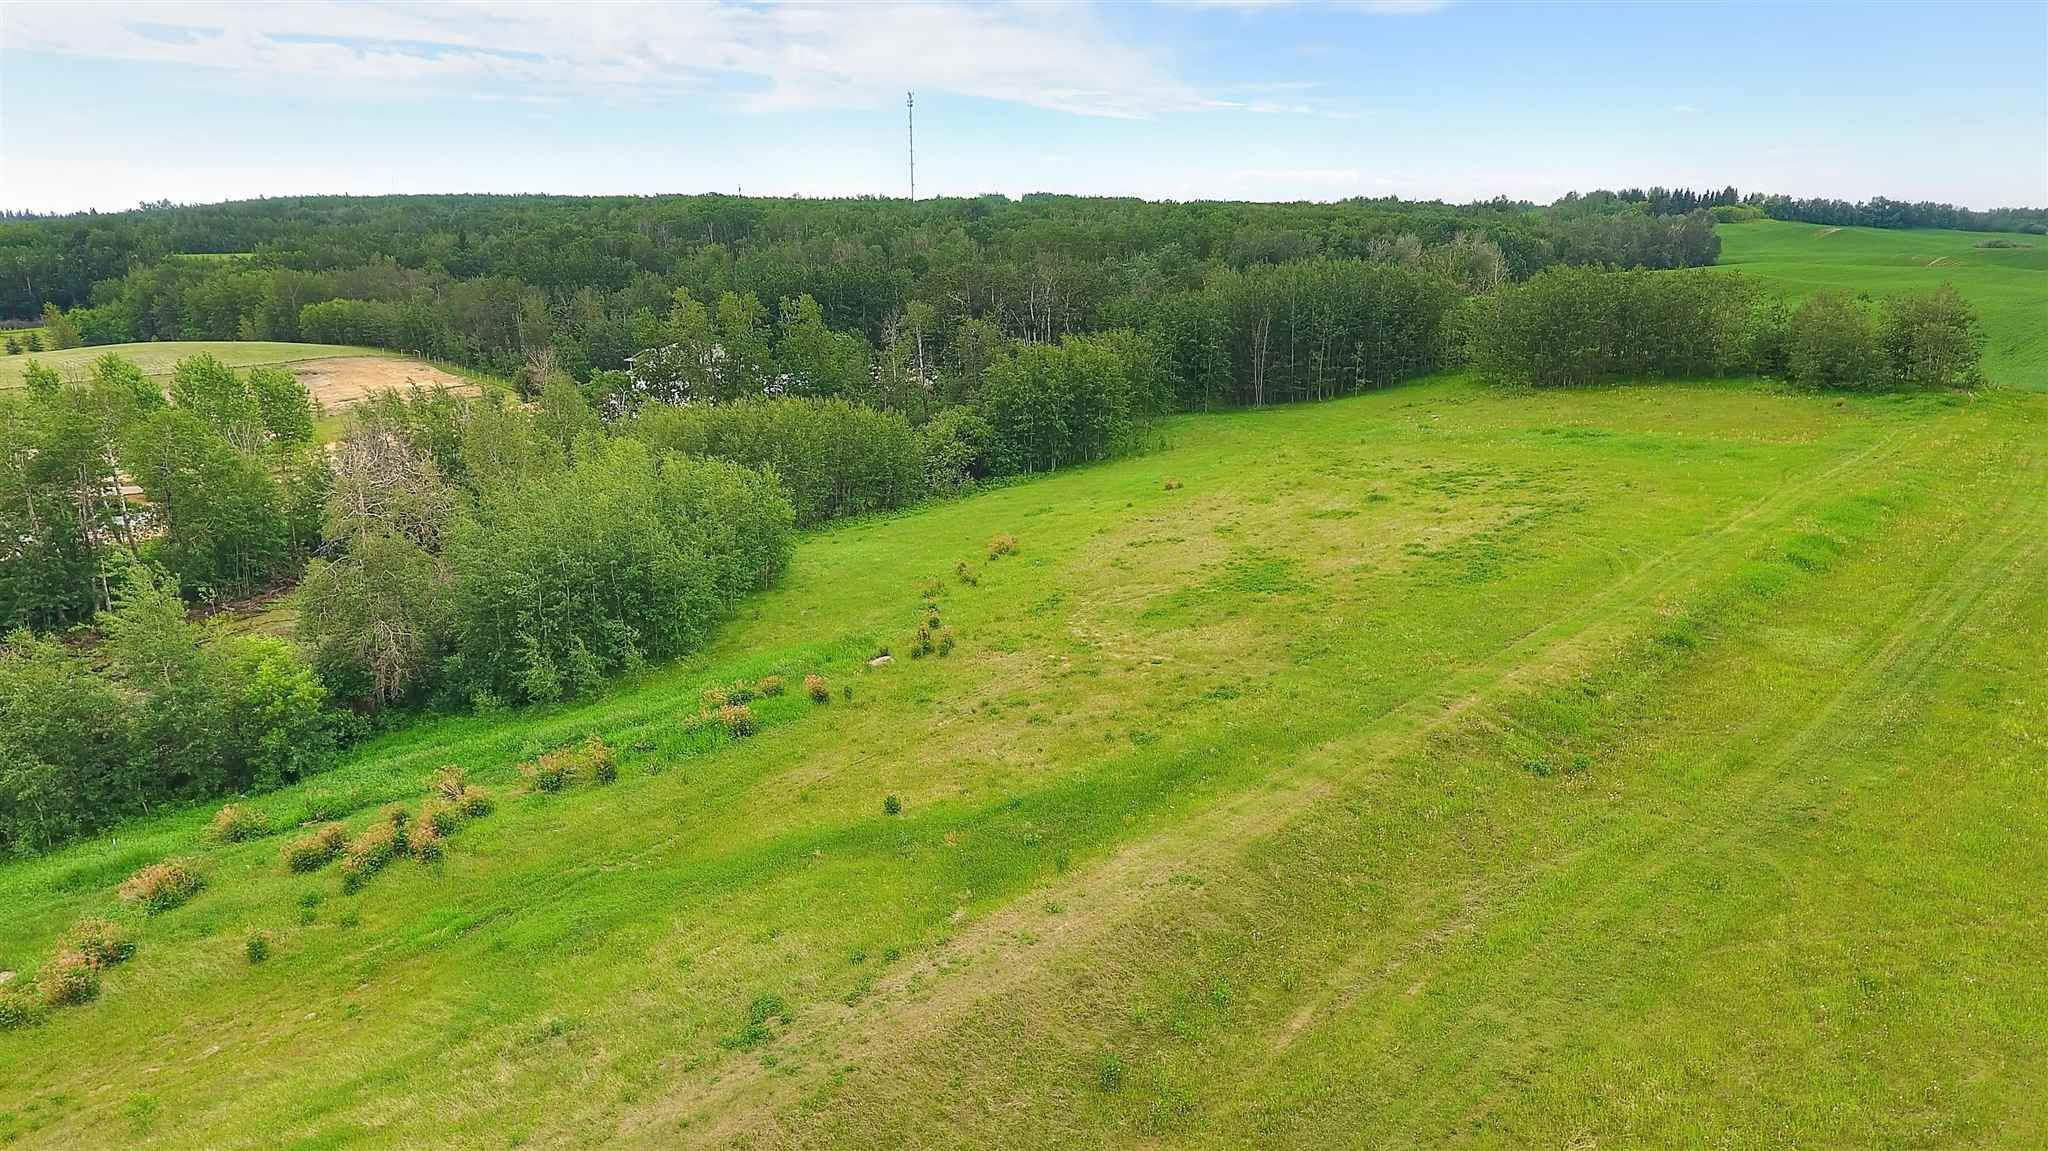 Main Photo: 31 53120 RGE RD 15: Rural Parkland County Rural Land/Vacant Lot for sale : MLS®# E4250038